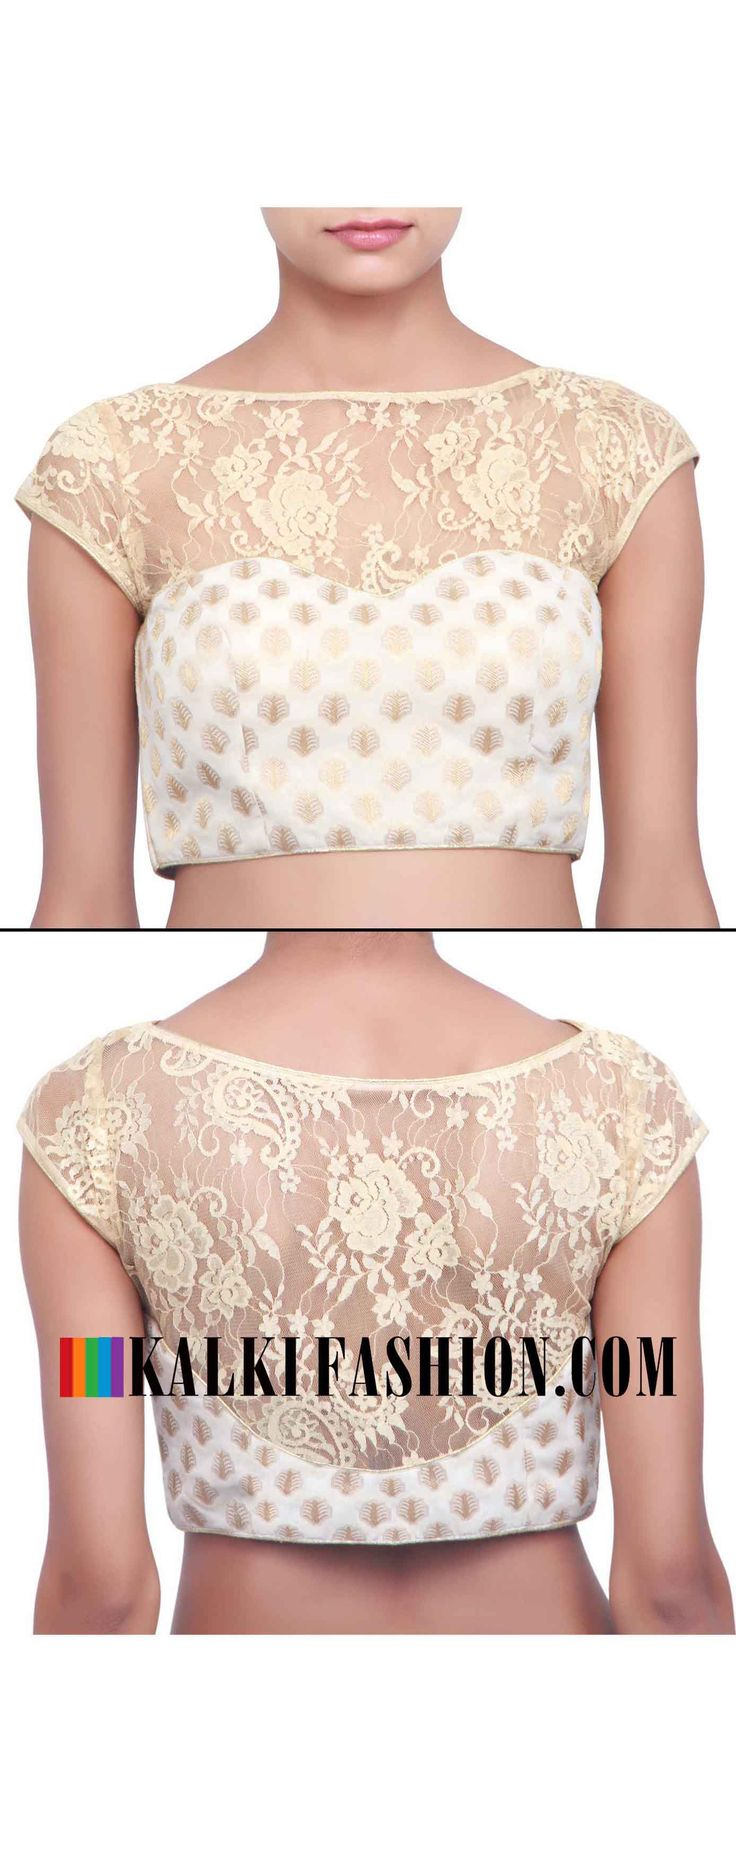 Buy online at: http://www.kalkifashion.com/blouse-featuring-in-cream-with-chantilly-lace-only-on-kalki.html Free shipping worldwide.